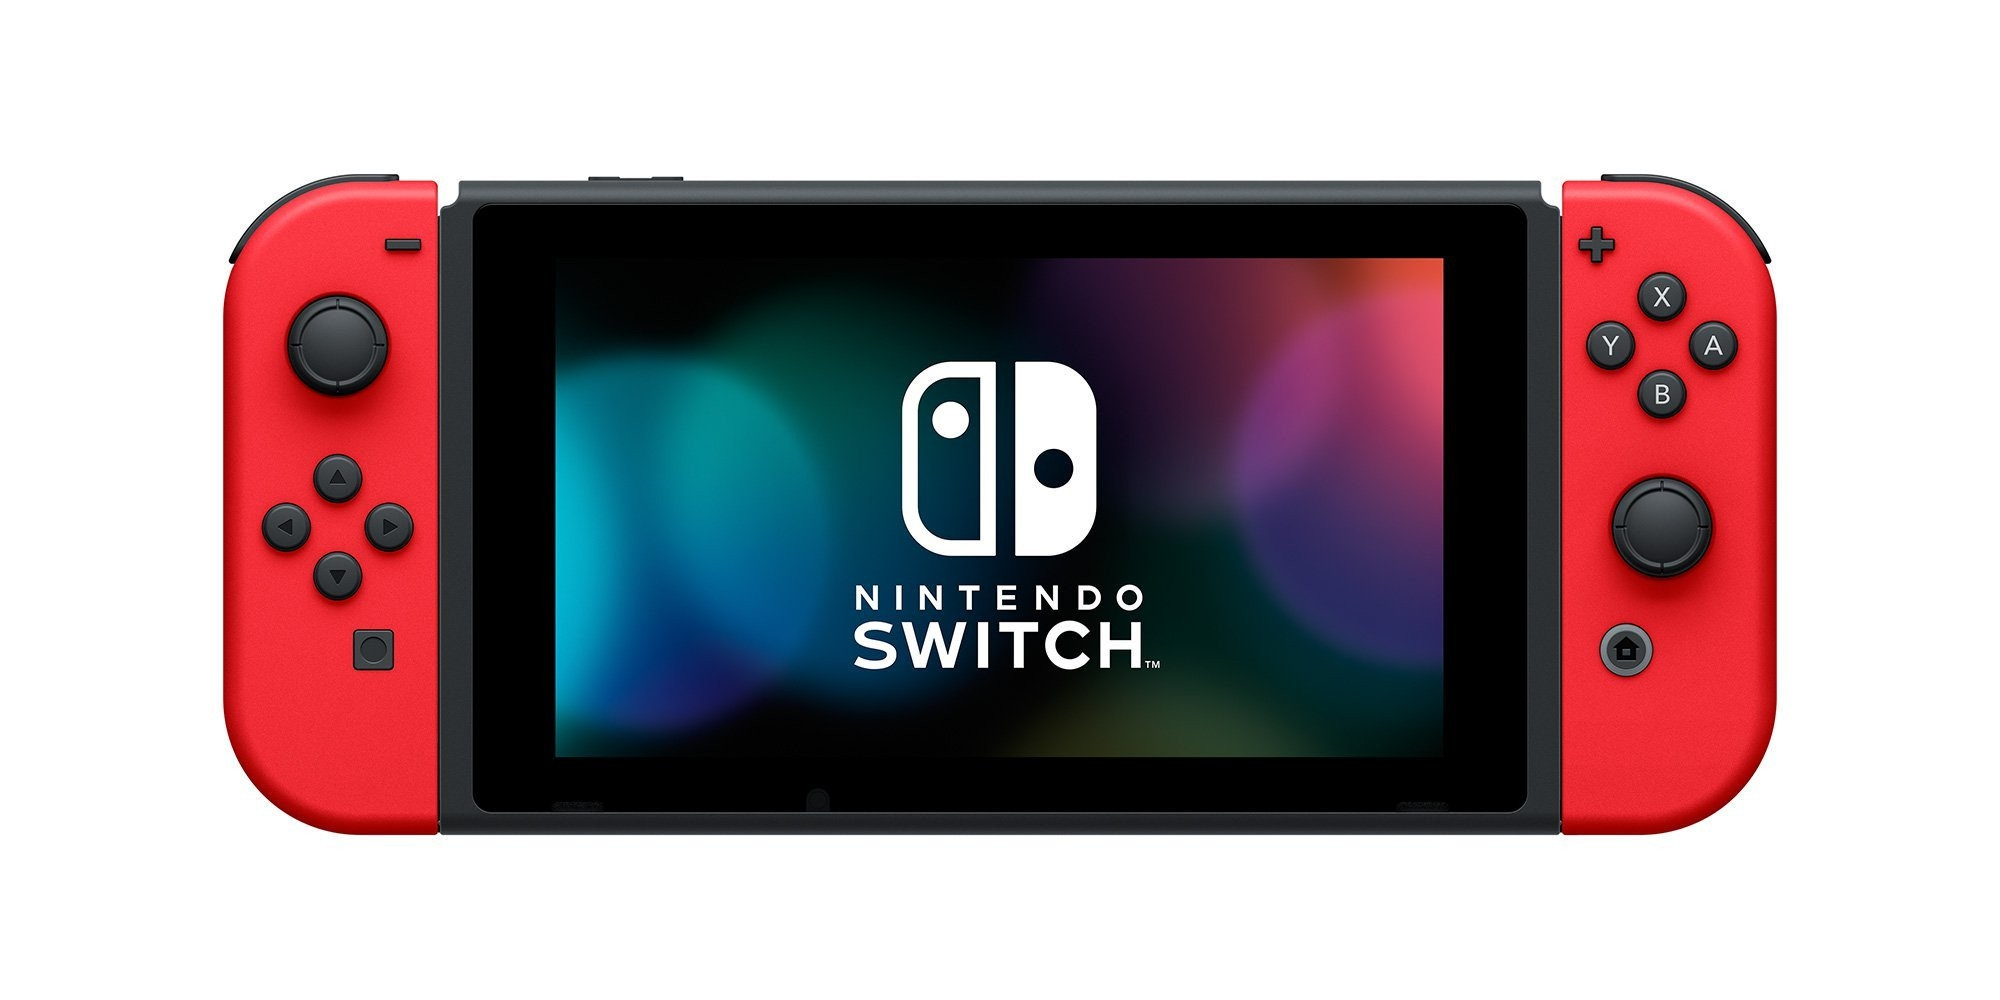 Super Mario Odyssey, Nintendo Switch, Super Smash Bros. Ultimate, Nintendo Switch Pro Controller, Super Mario Party, Wii U, Bowser, , Nintendo, Video Games, switch mario odyssey edition, red, playstation portable accessory, technology, gadget, electronic device, product, game controller, portable game console accessory, video game accessory, hardware